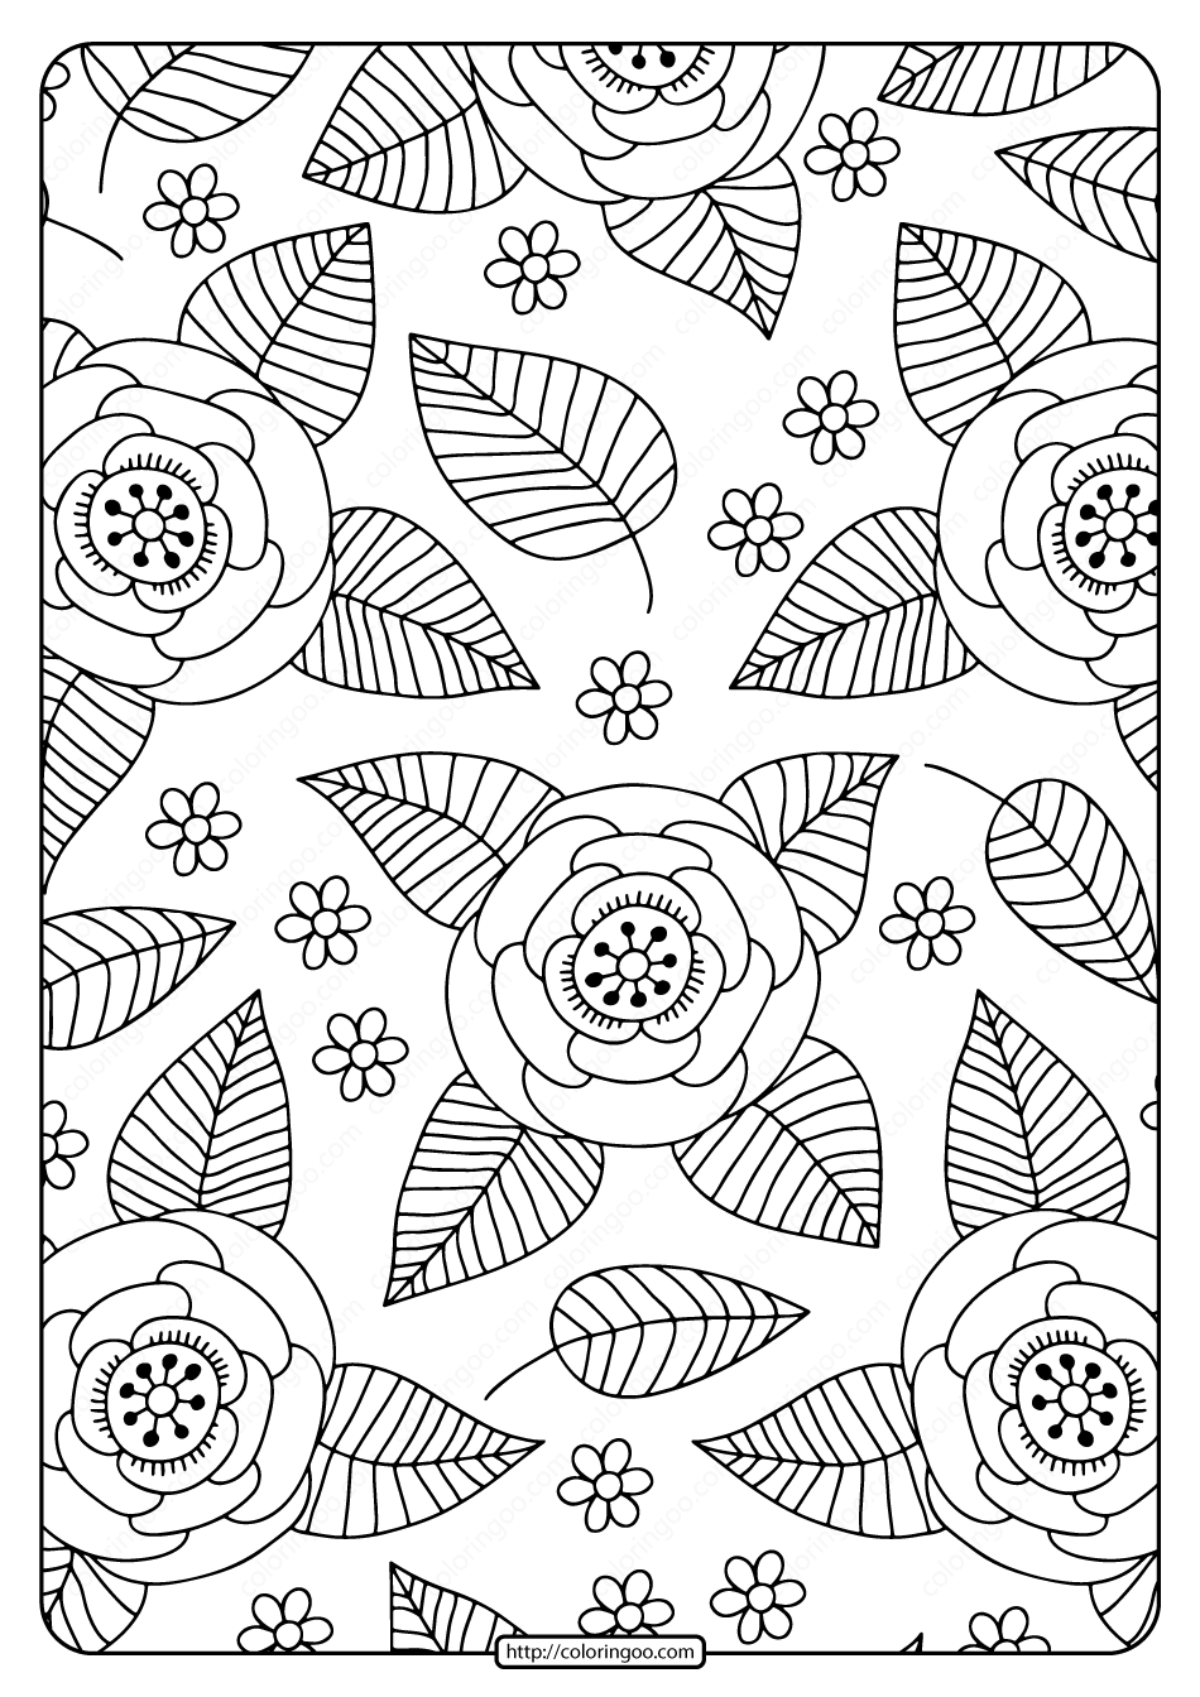 Japanese Wave Pattern coloring page | Free Printable Coloring Pages | 1697x1200